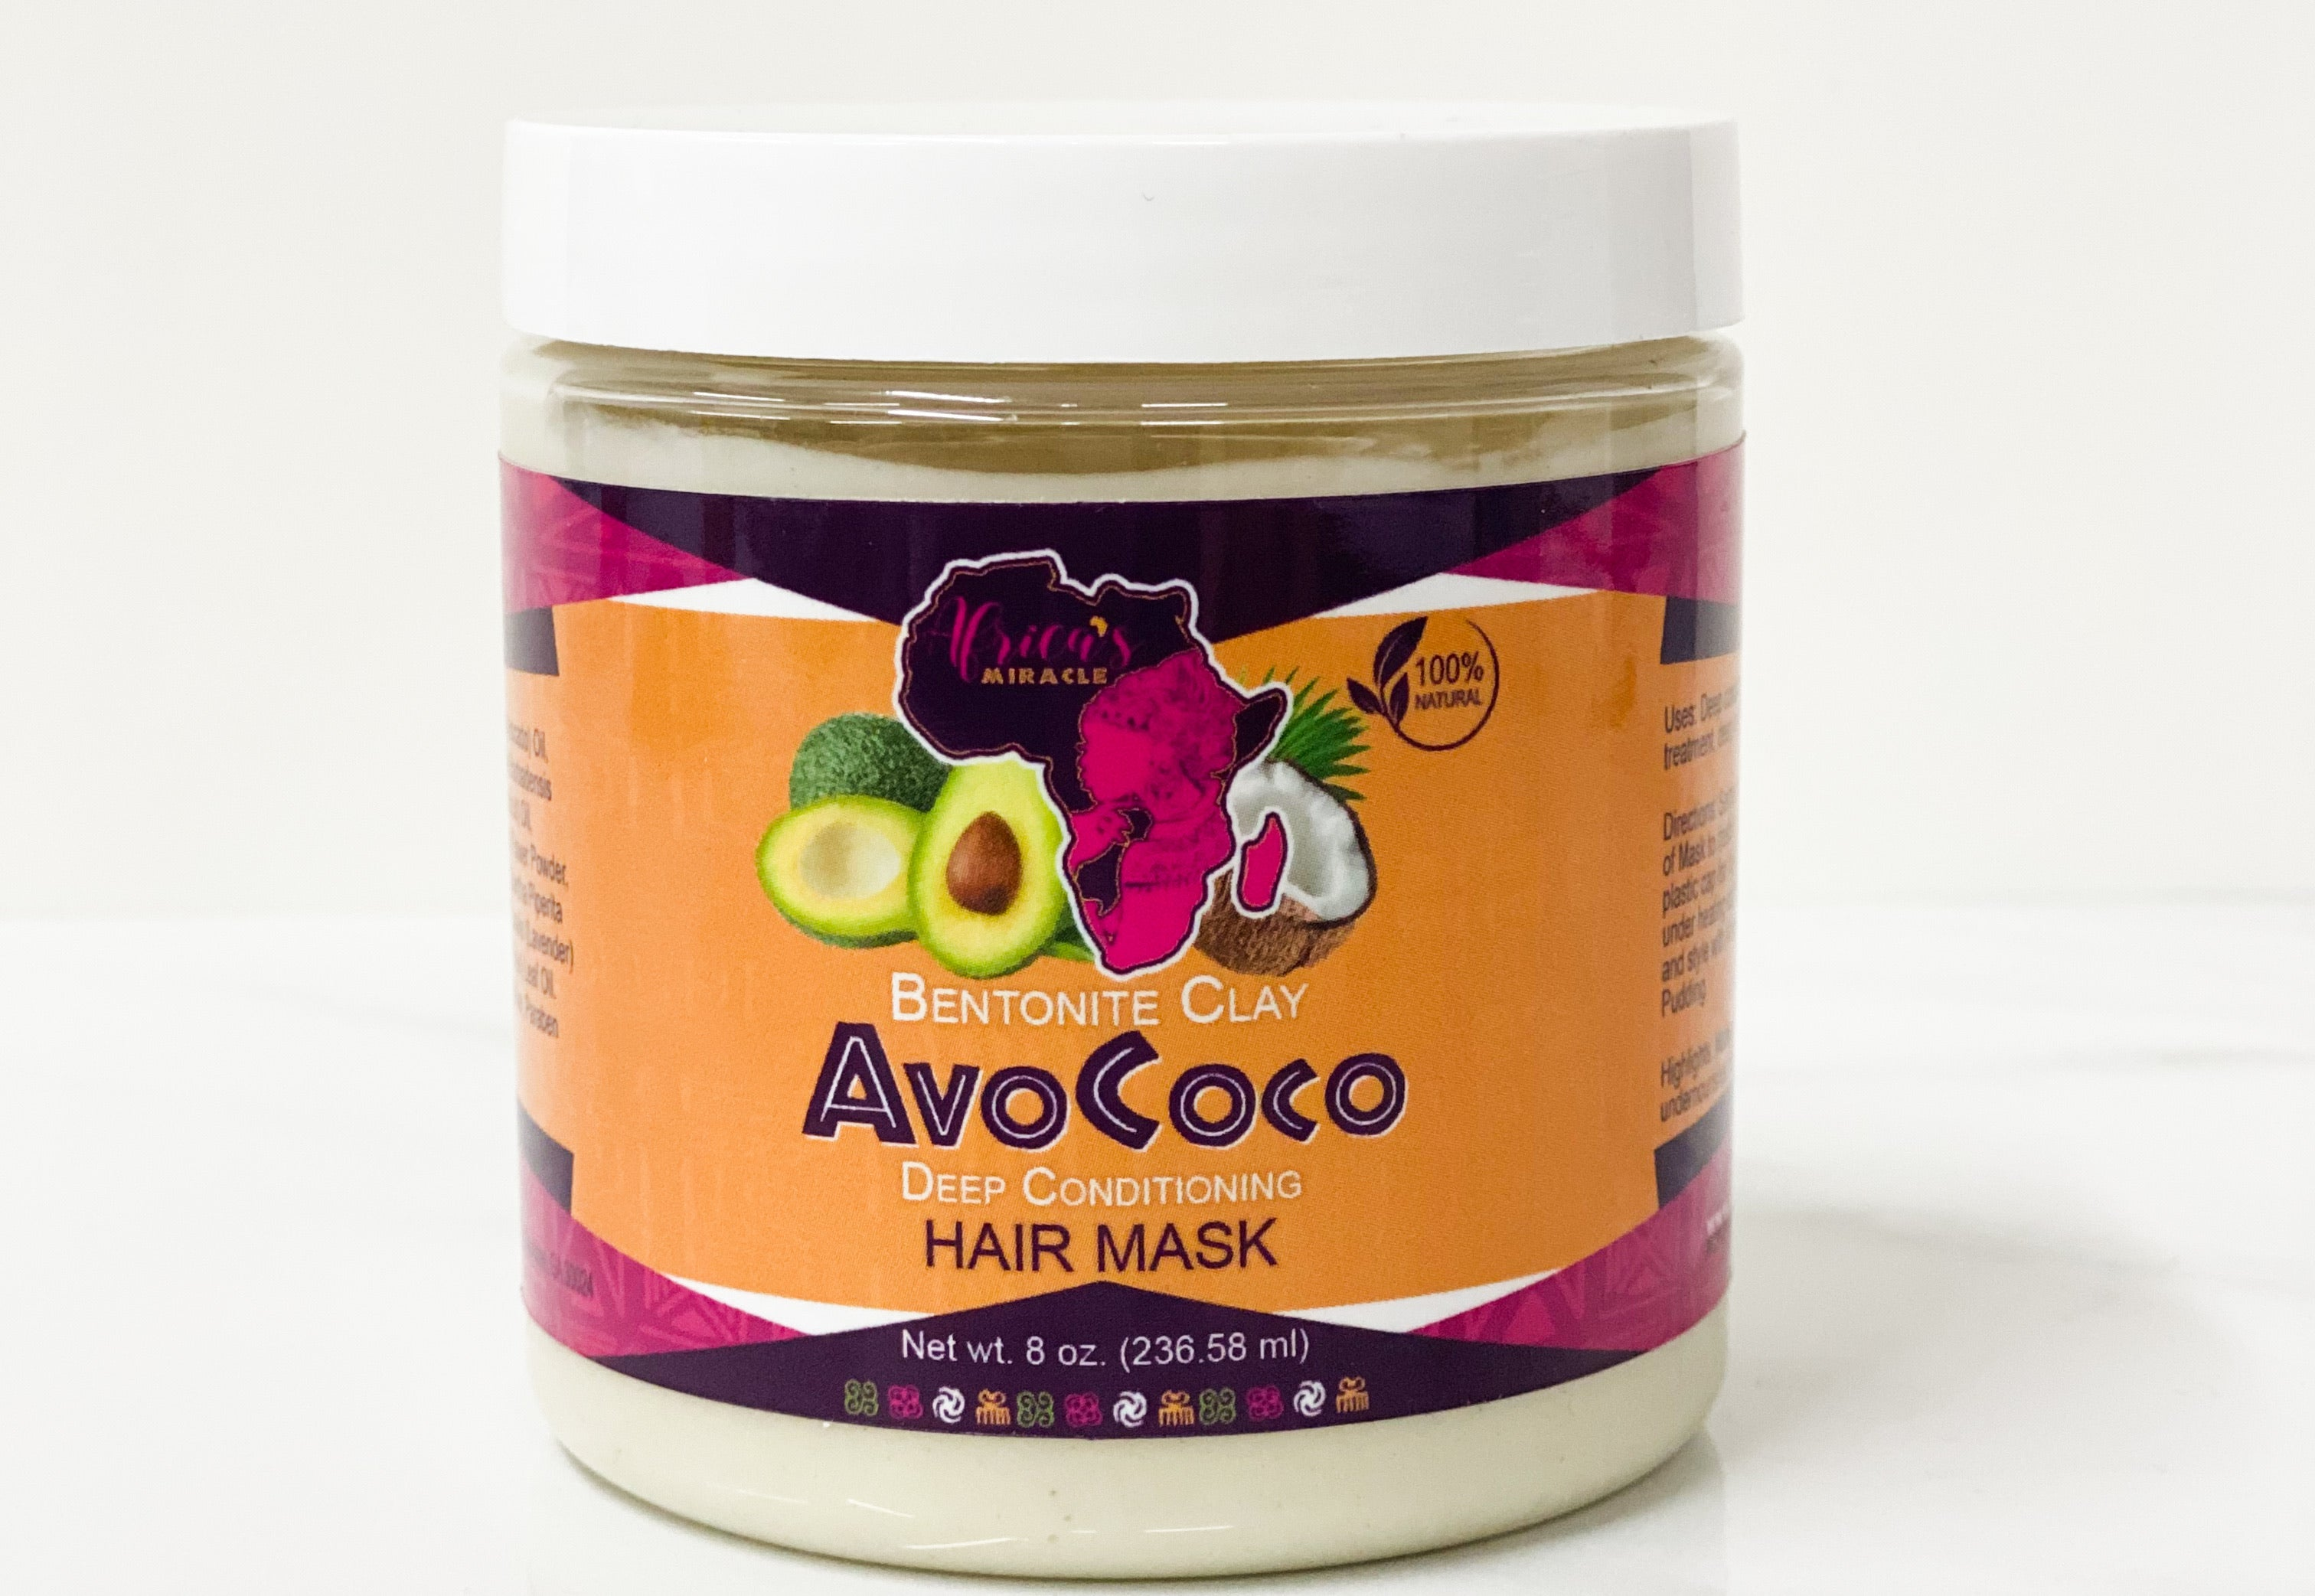 AvoCoco | Bentonite Clay Deep Conditioning Hair Mask